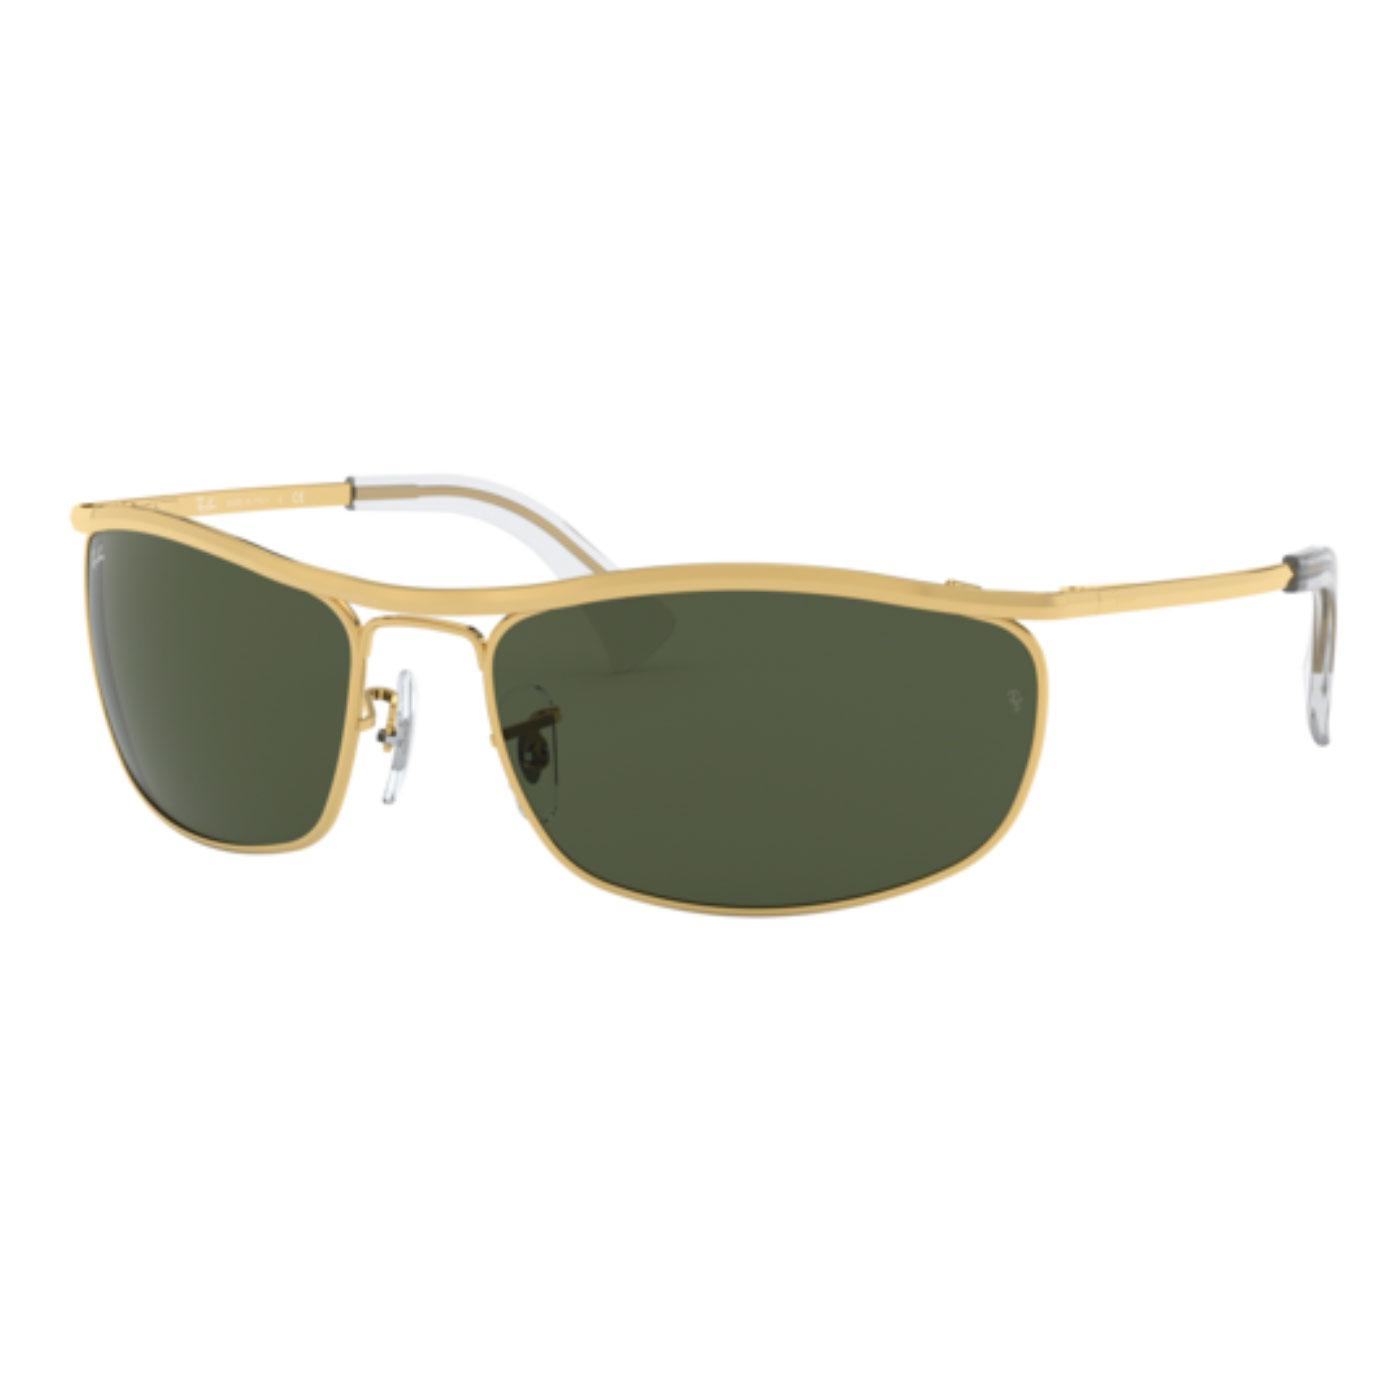 Olympian RAY-BAN Retro Mod Icons Sunglasses (AG)